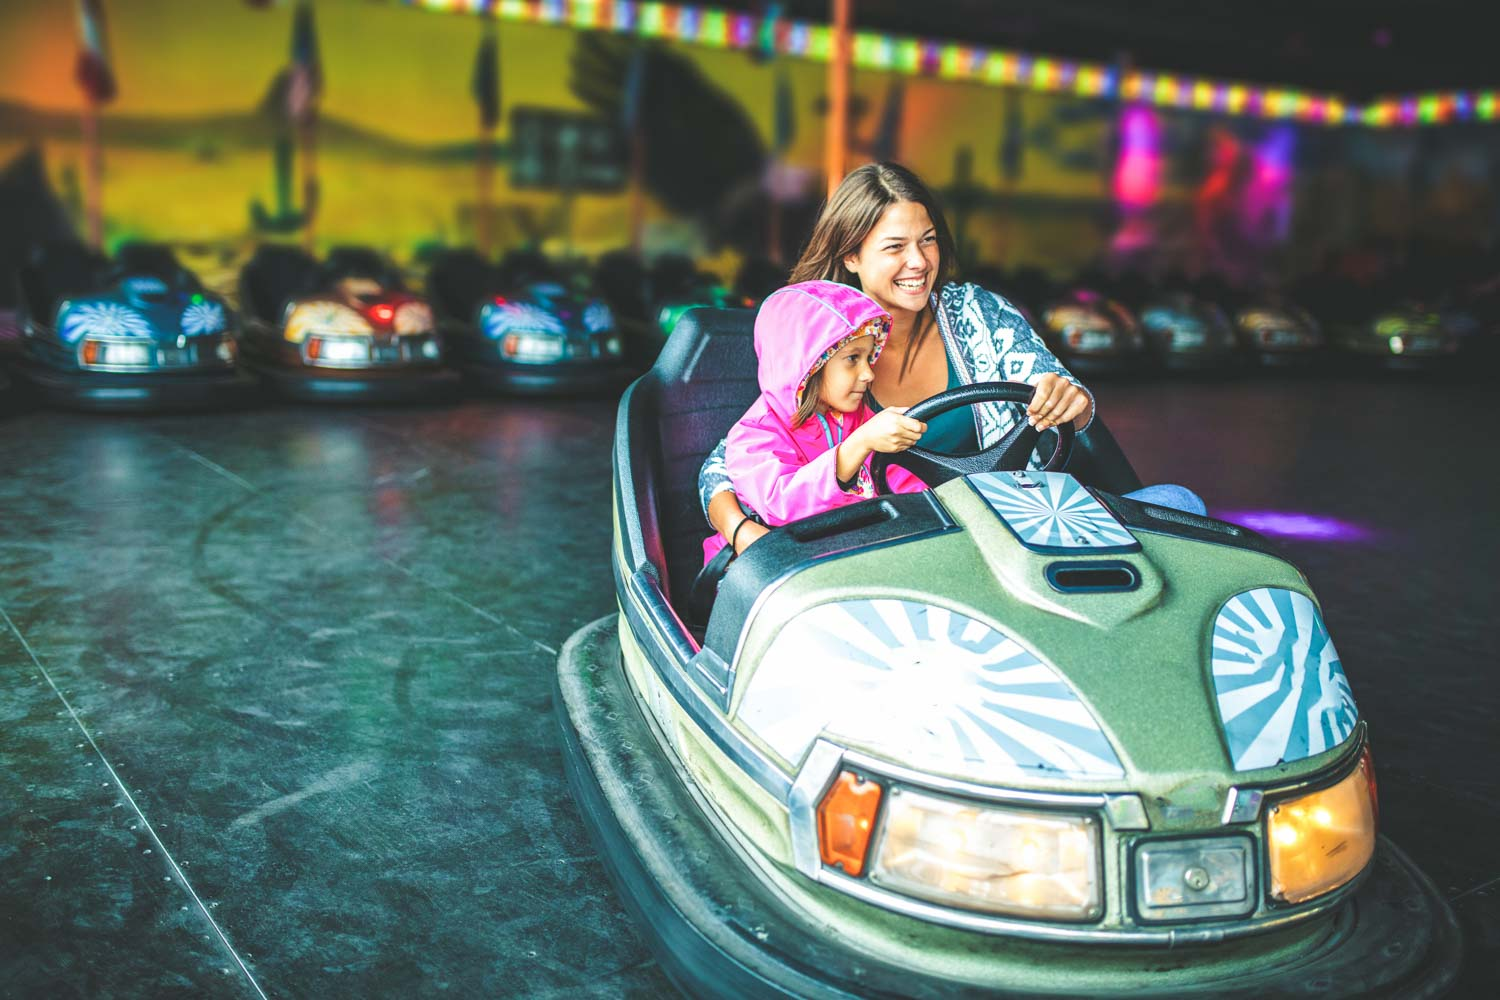 Mother and child in bumper car